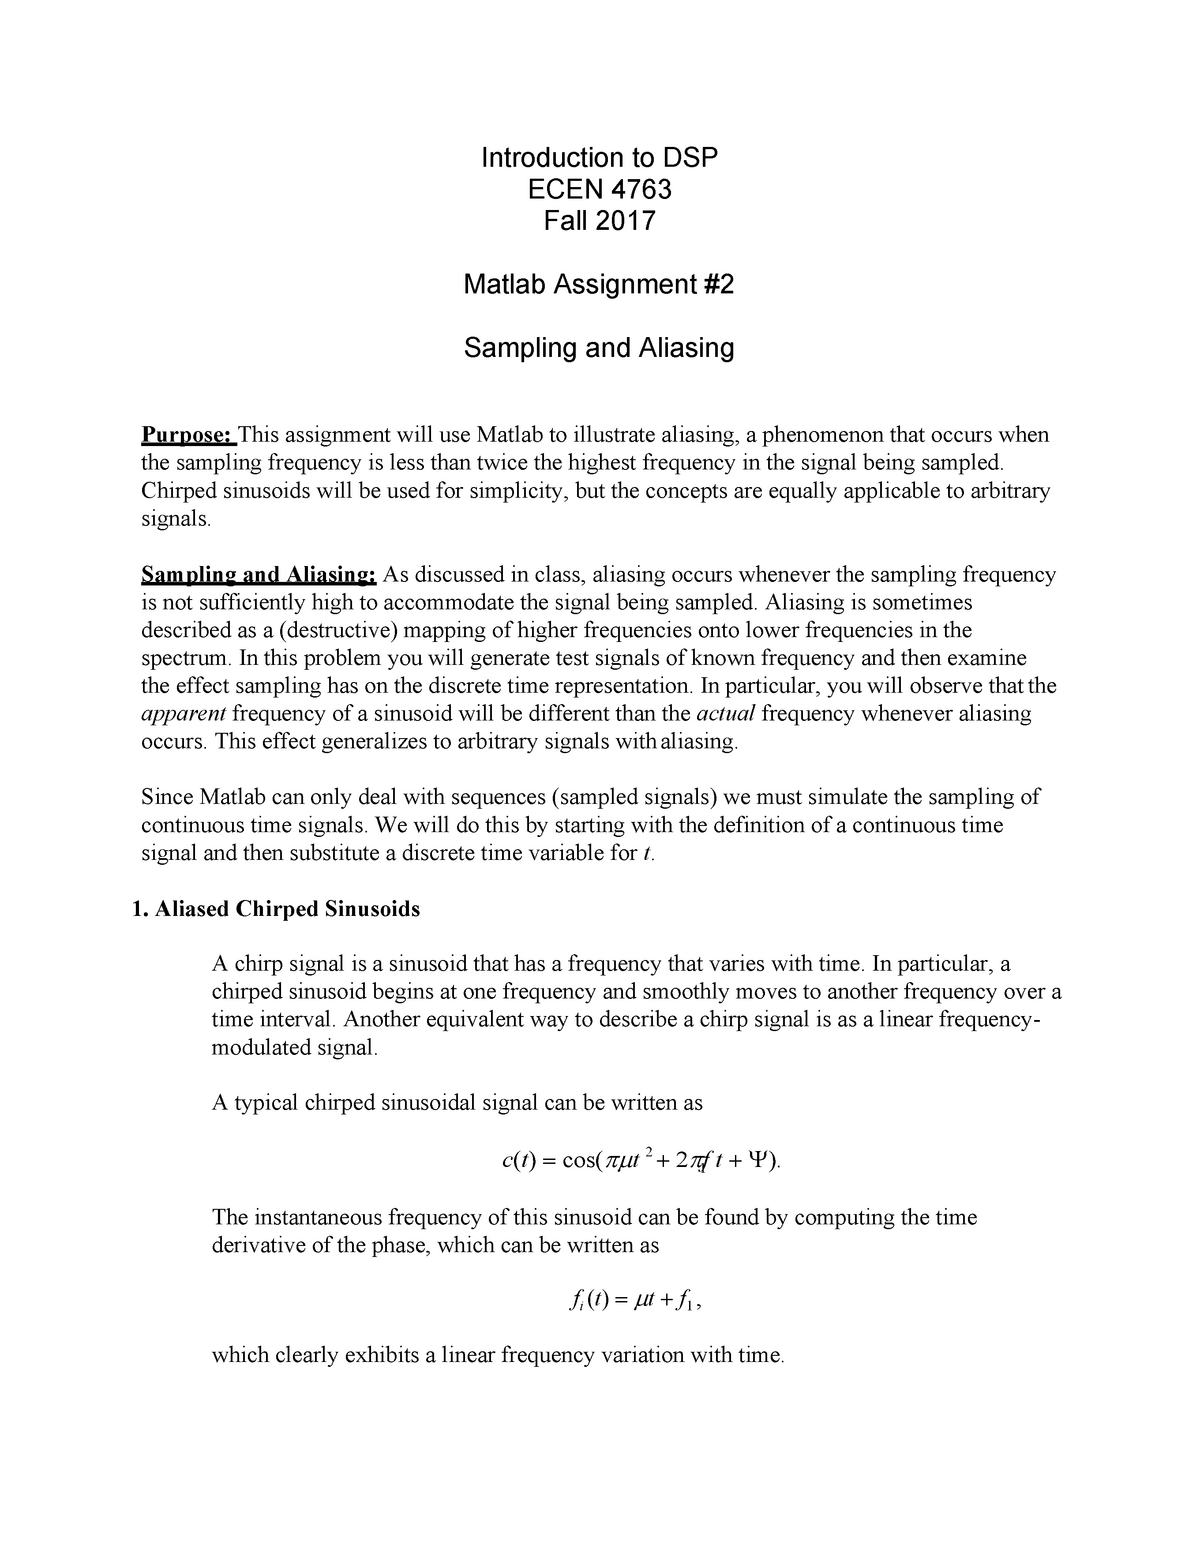 Matlab Assignment 2 (Questions only) - ECEN 4763 - OK State